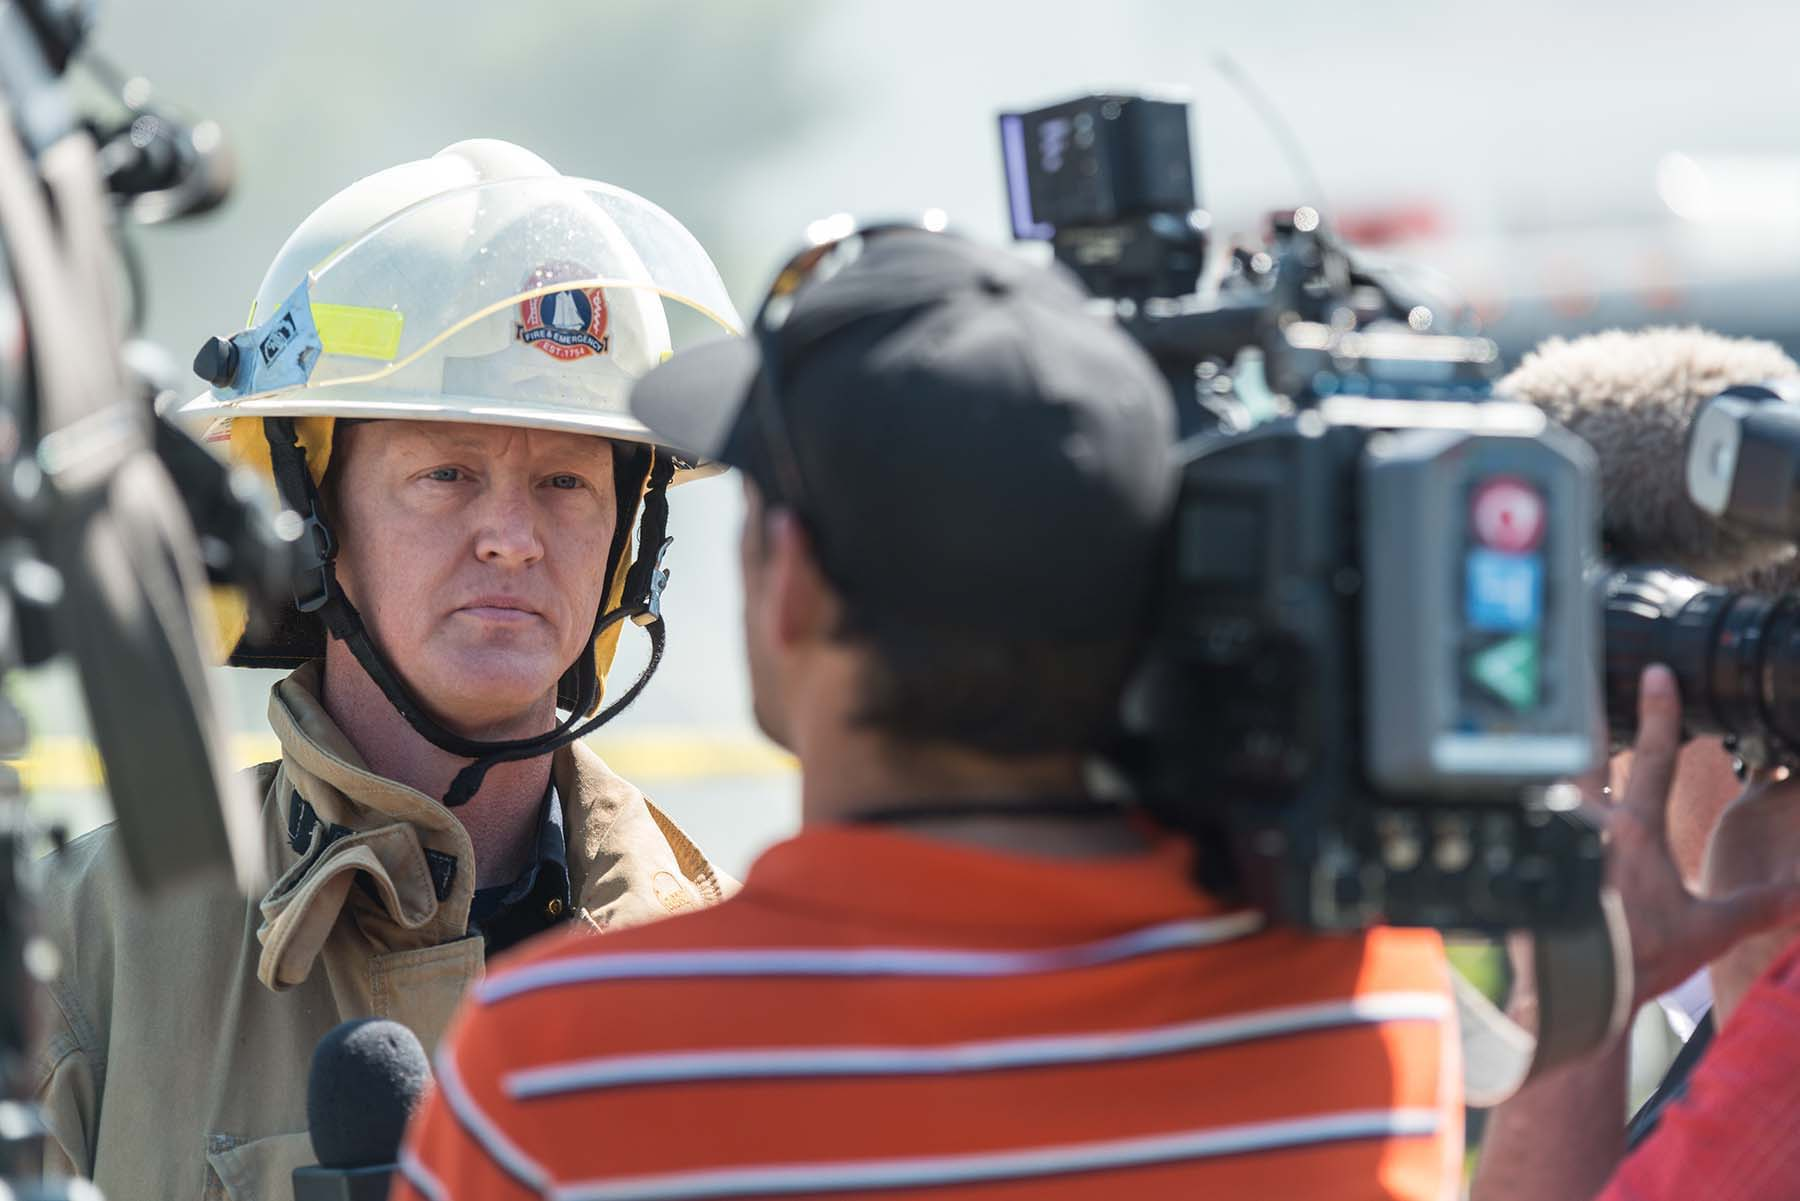 firefighter giving an interview to the news media